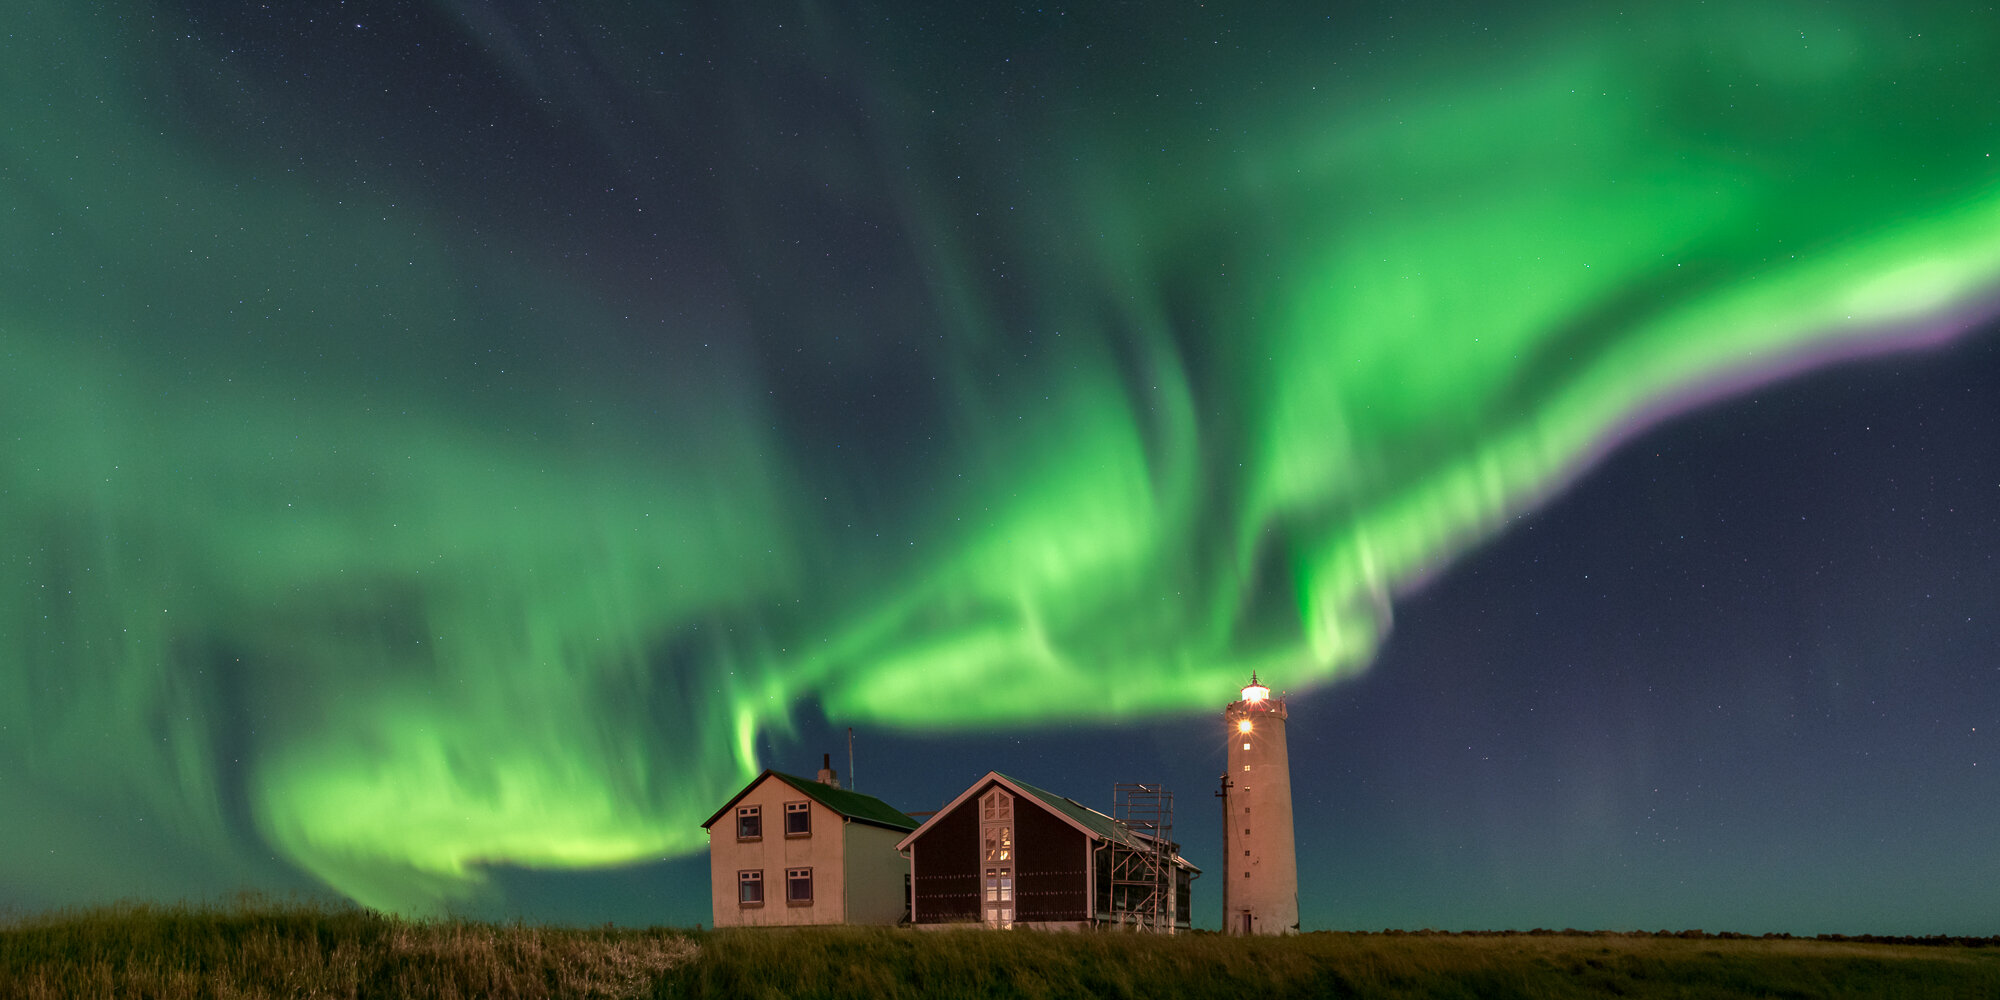 Iceland Northern Lights Photography: 'Vik Farmhouse'